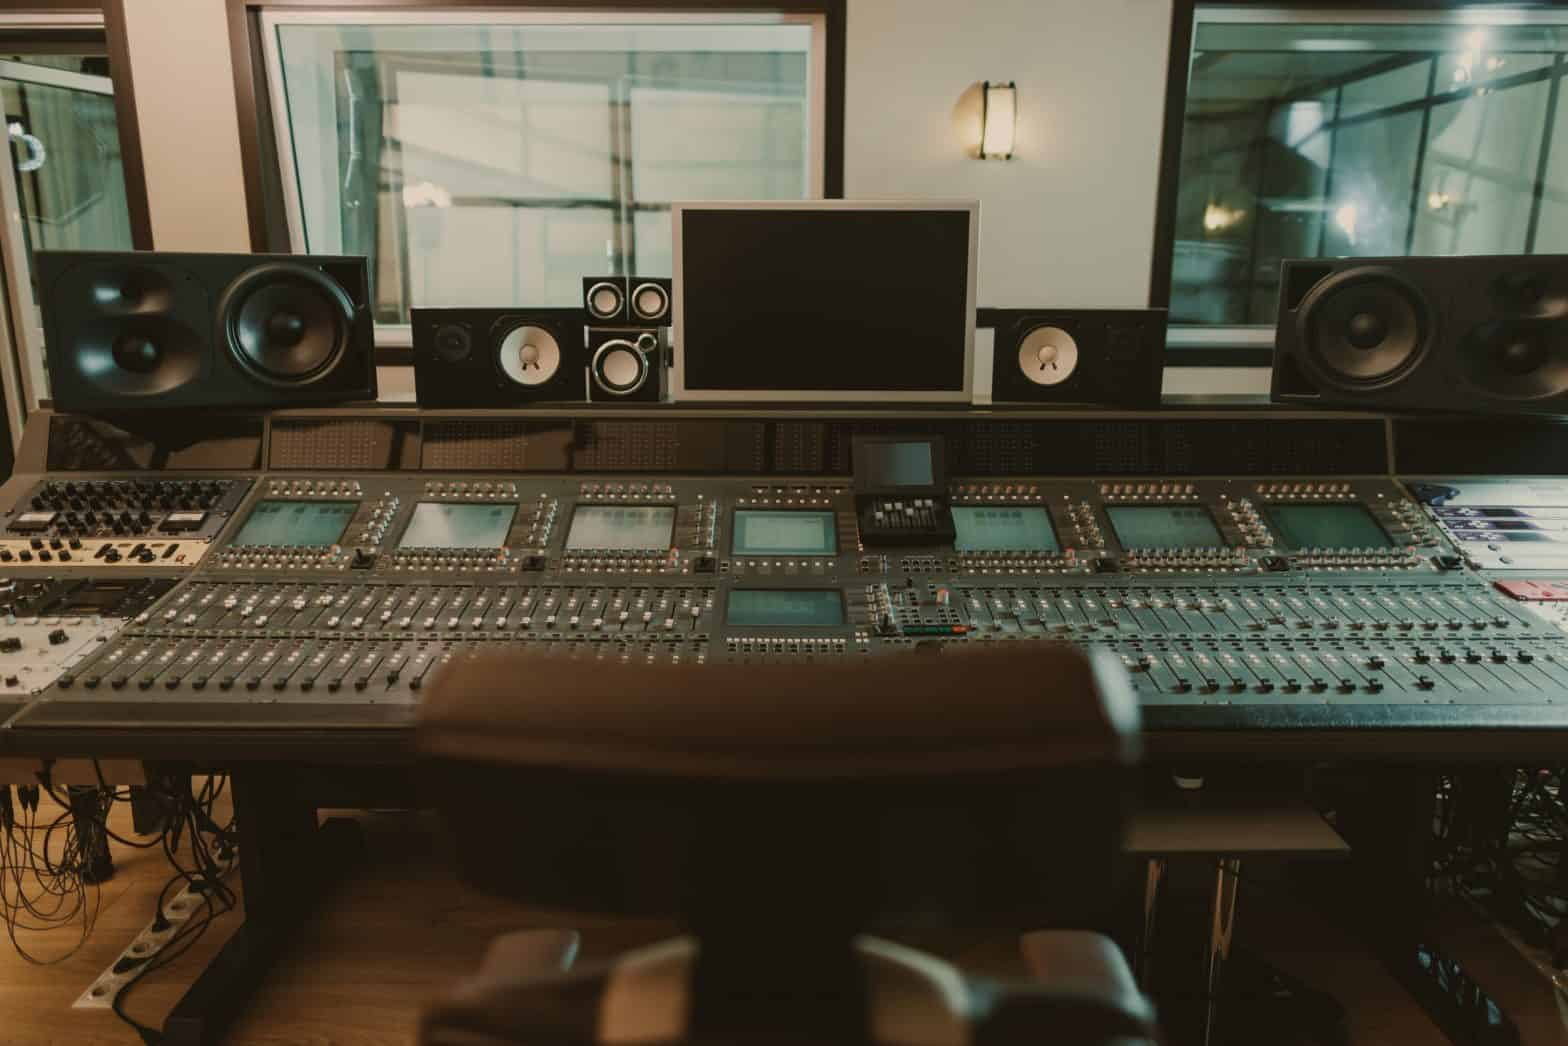 view of sound-producing equipment at a recording studio